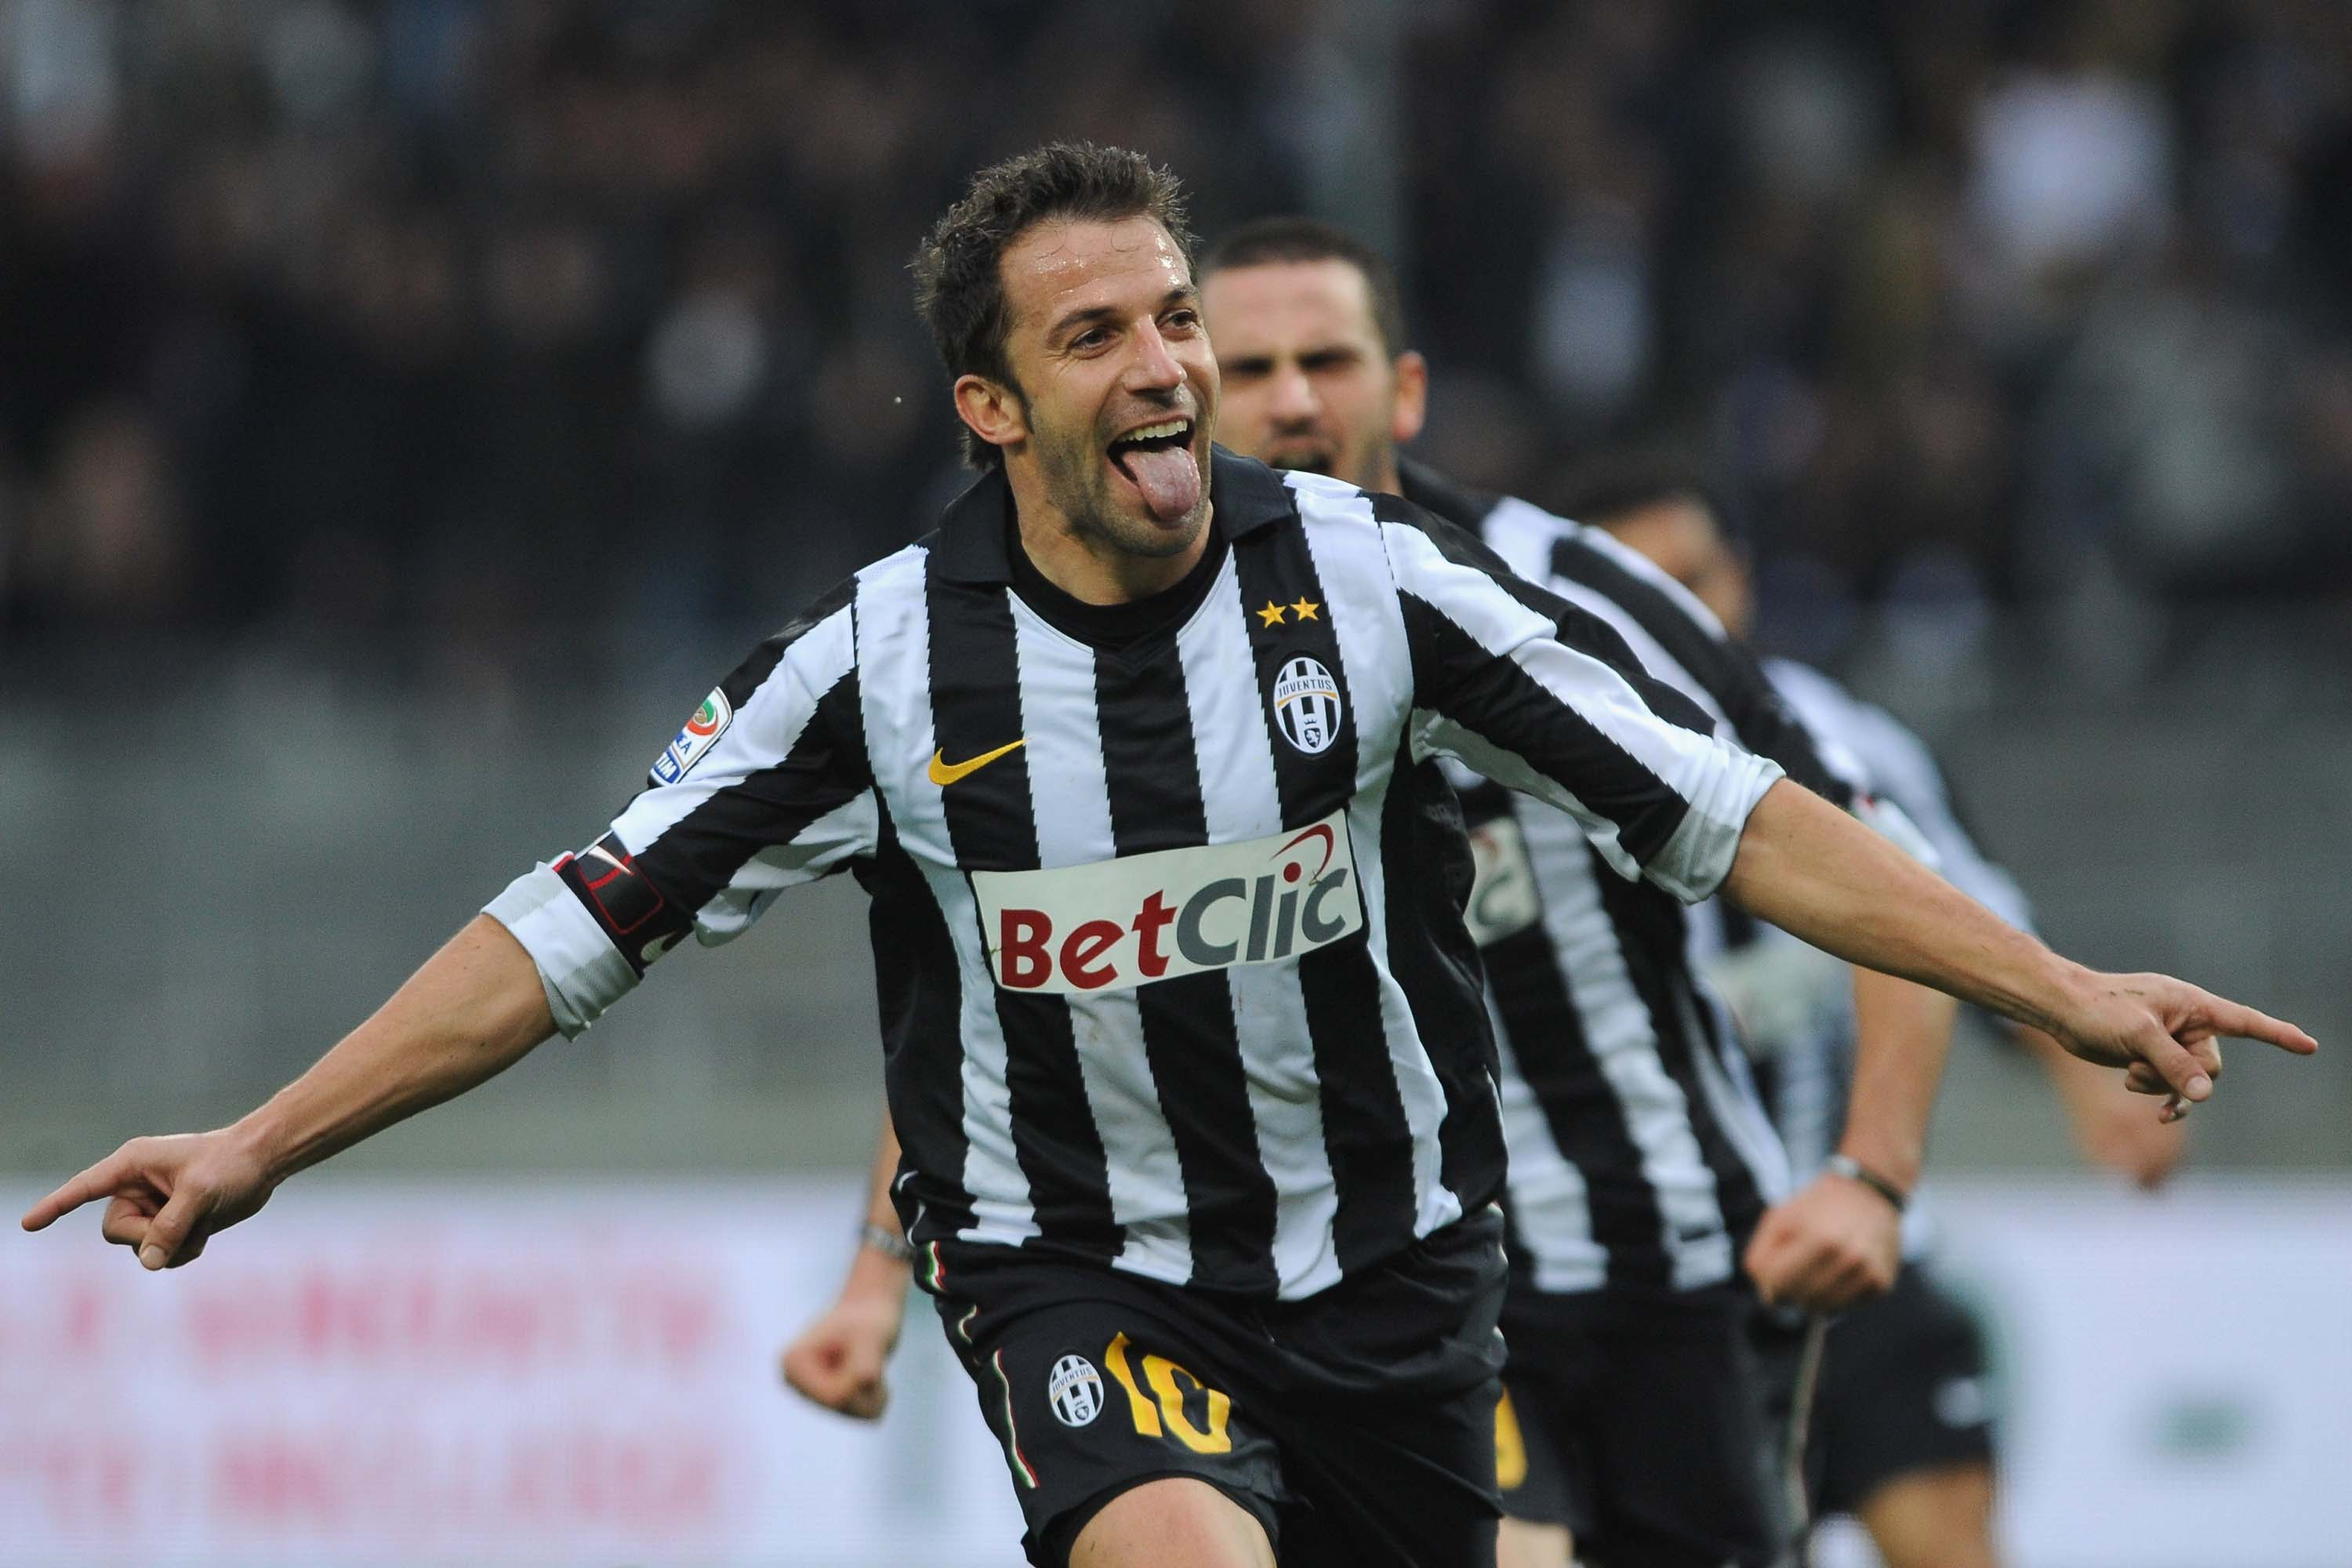 Del Piero after a goal wallpaper | 3000x2000 | 2275 | WallpaperUP